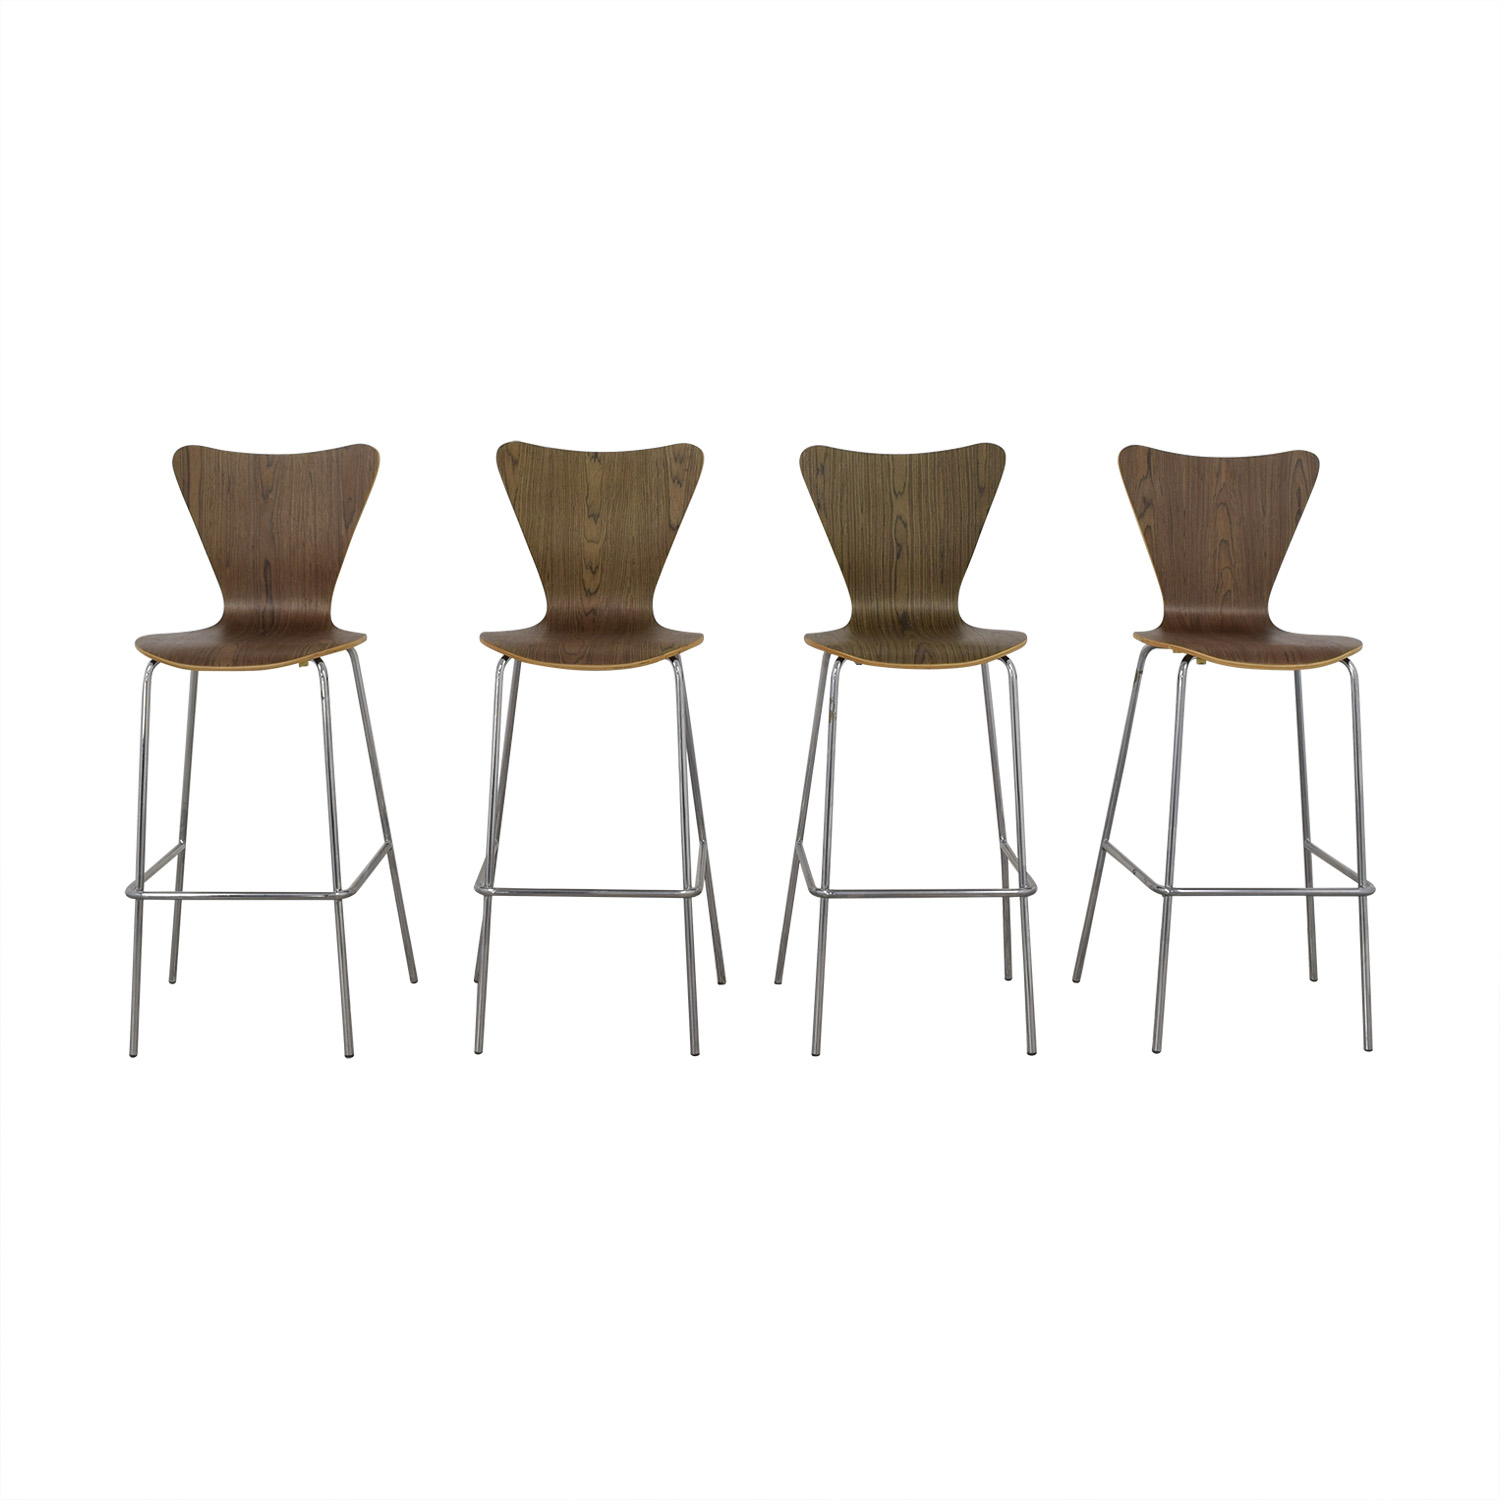 68 Off Modway Modway Furniture Arne Jacobsen Bar Stools Chairs